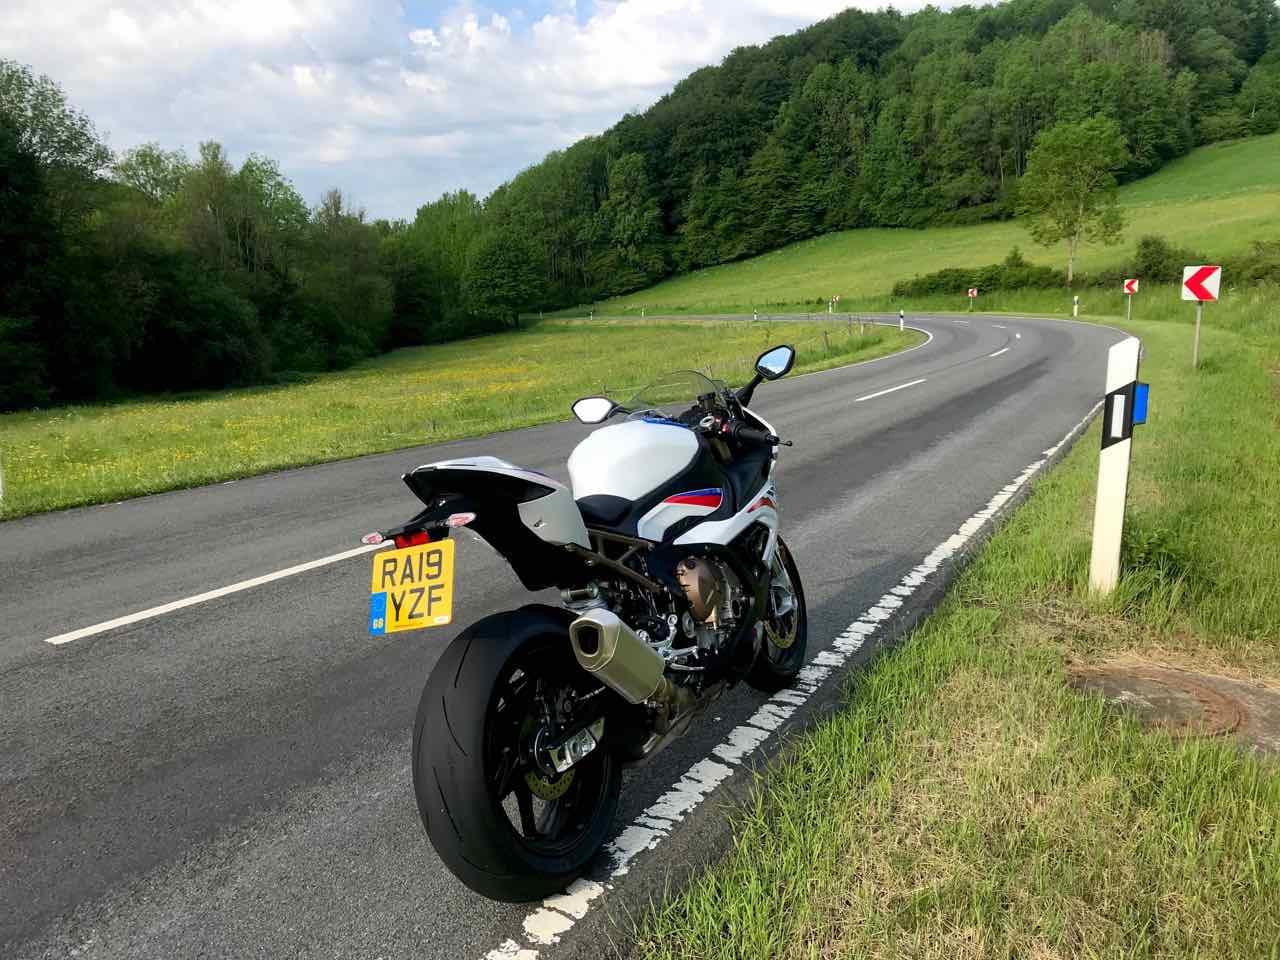 The BMW S1000RR in Germany